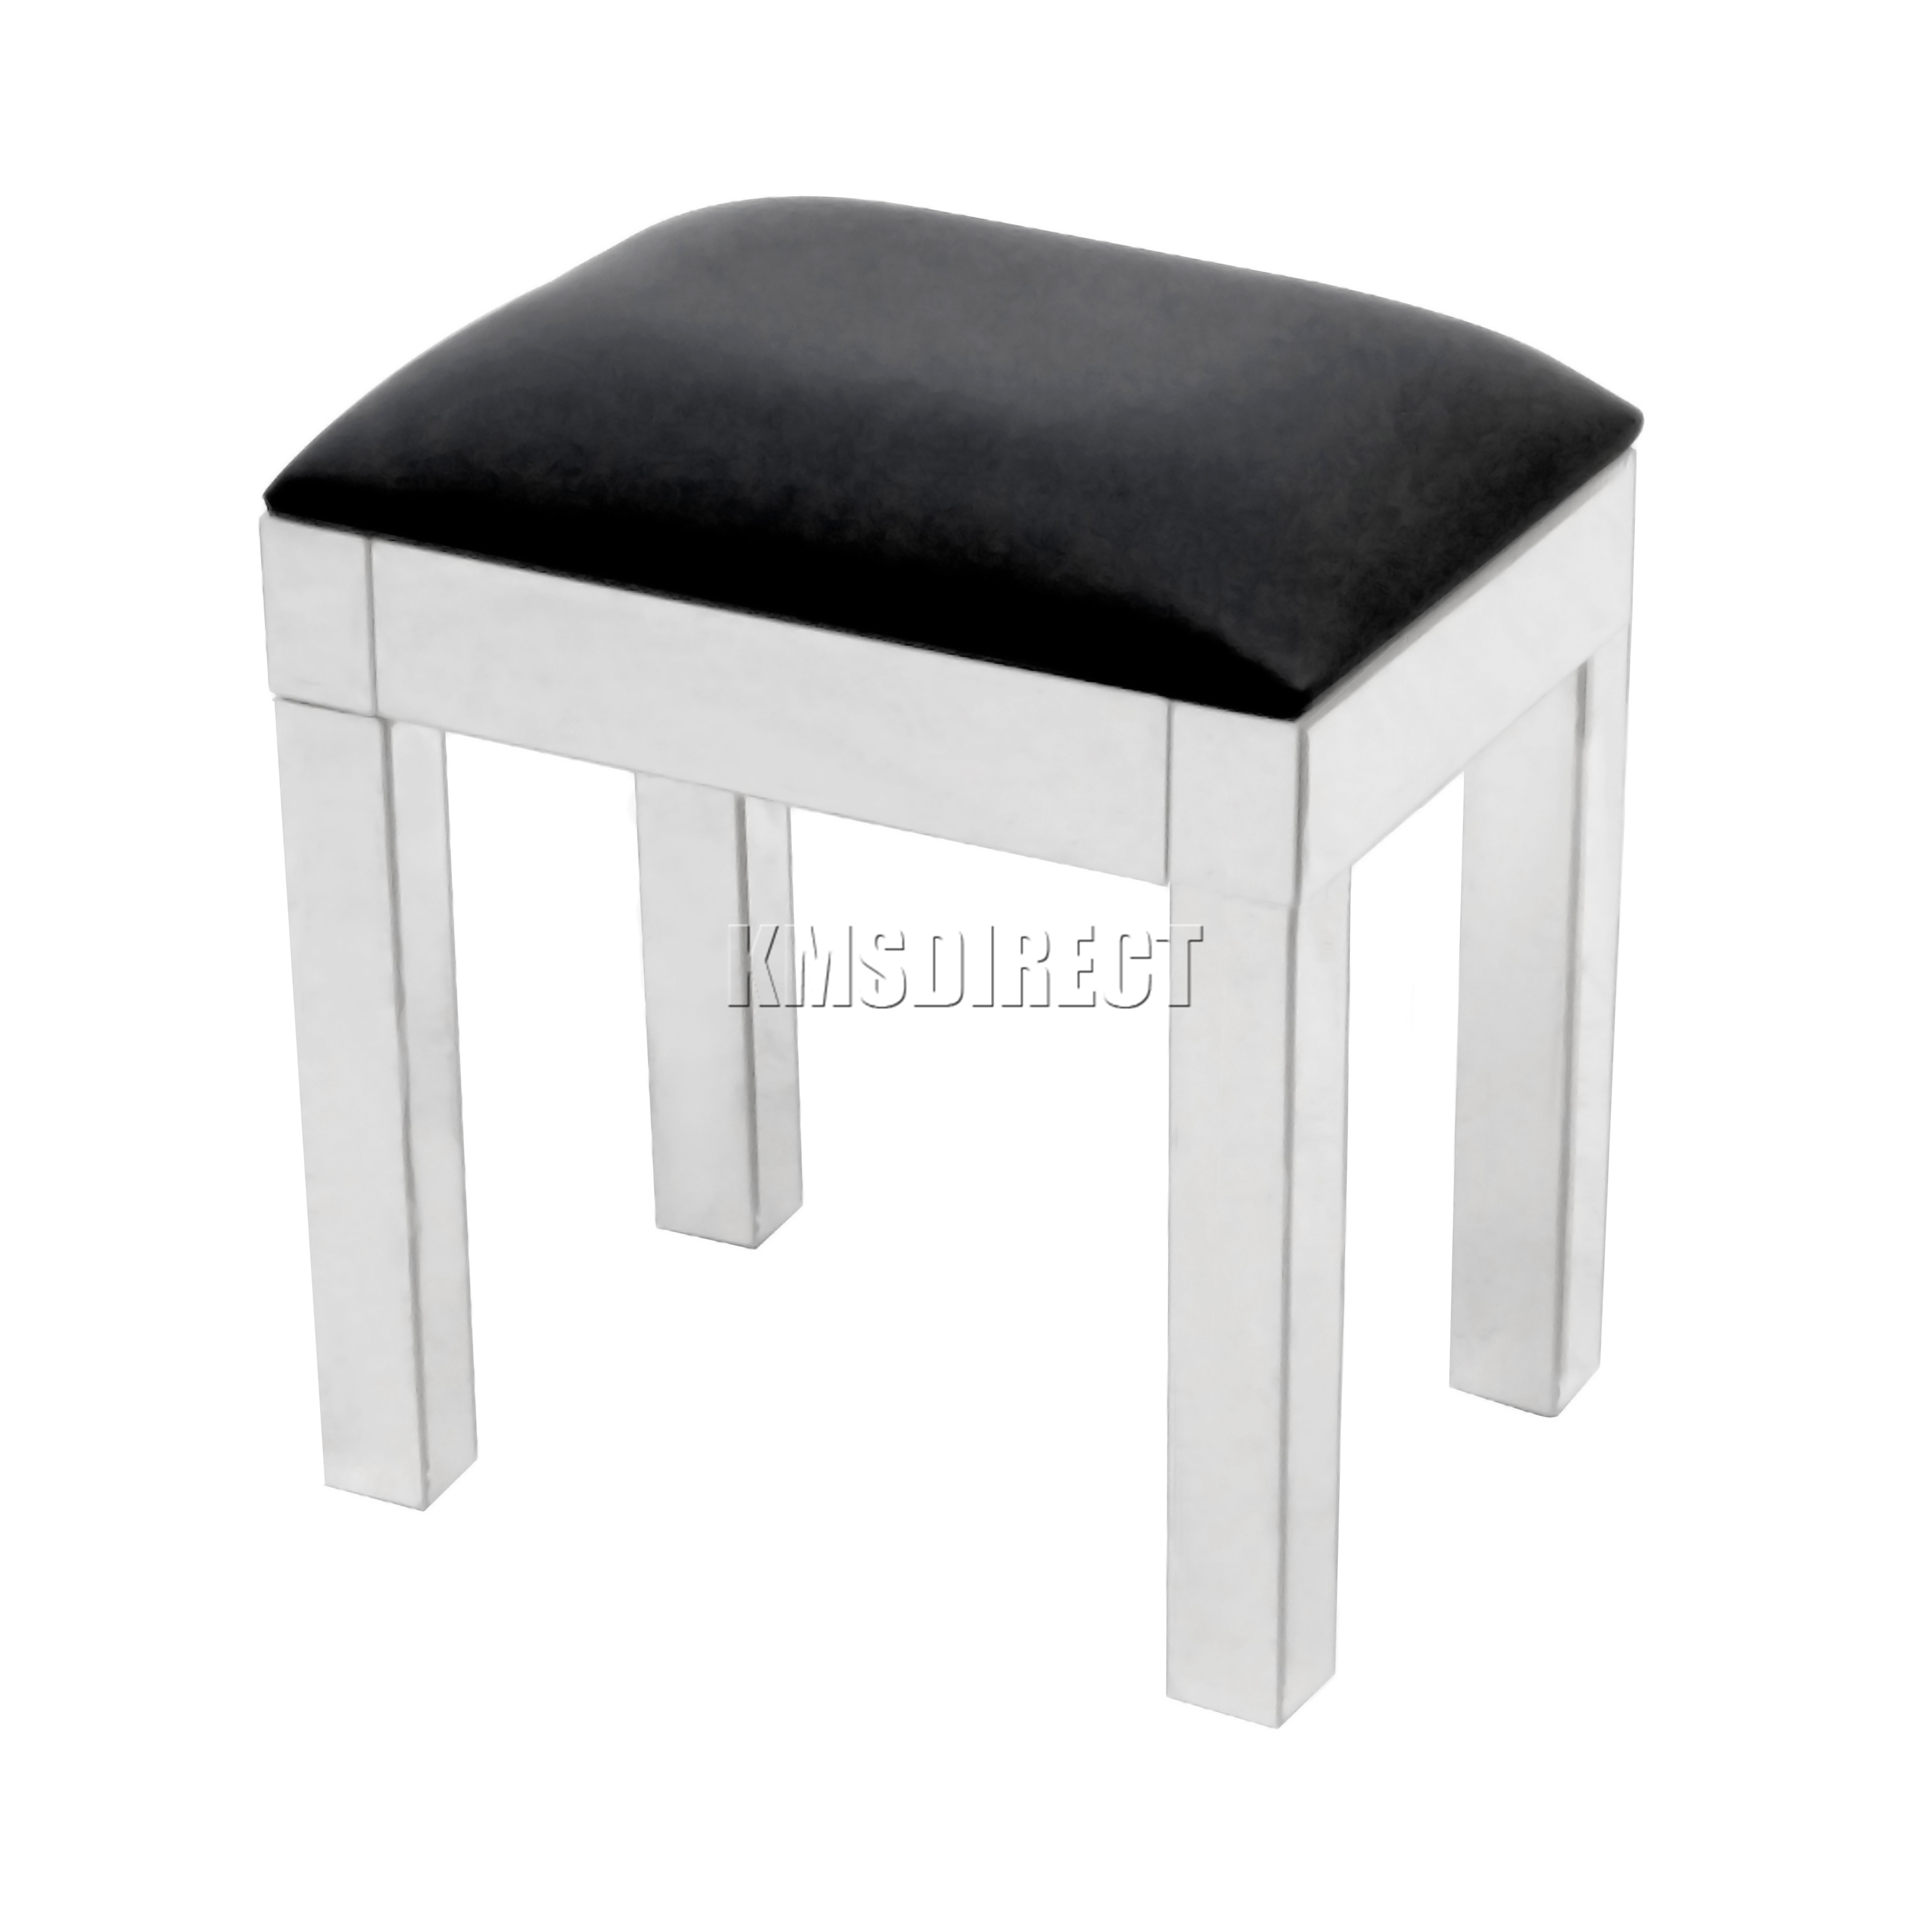 Foxhunter Mirrored Furniture Glass Dressing Table Stool